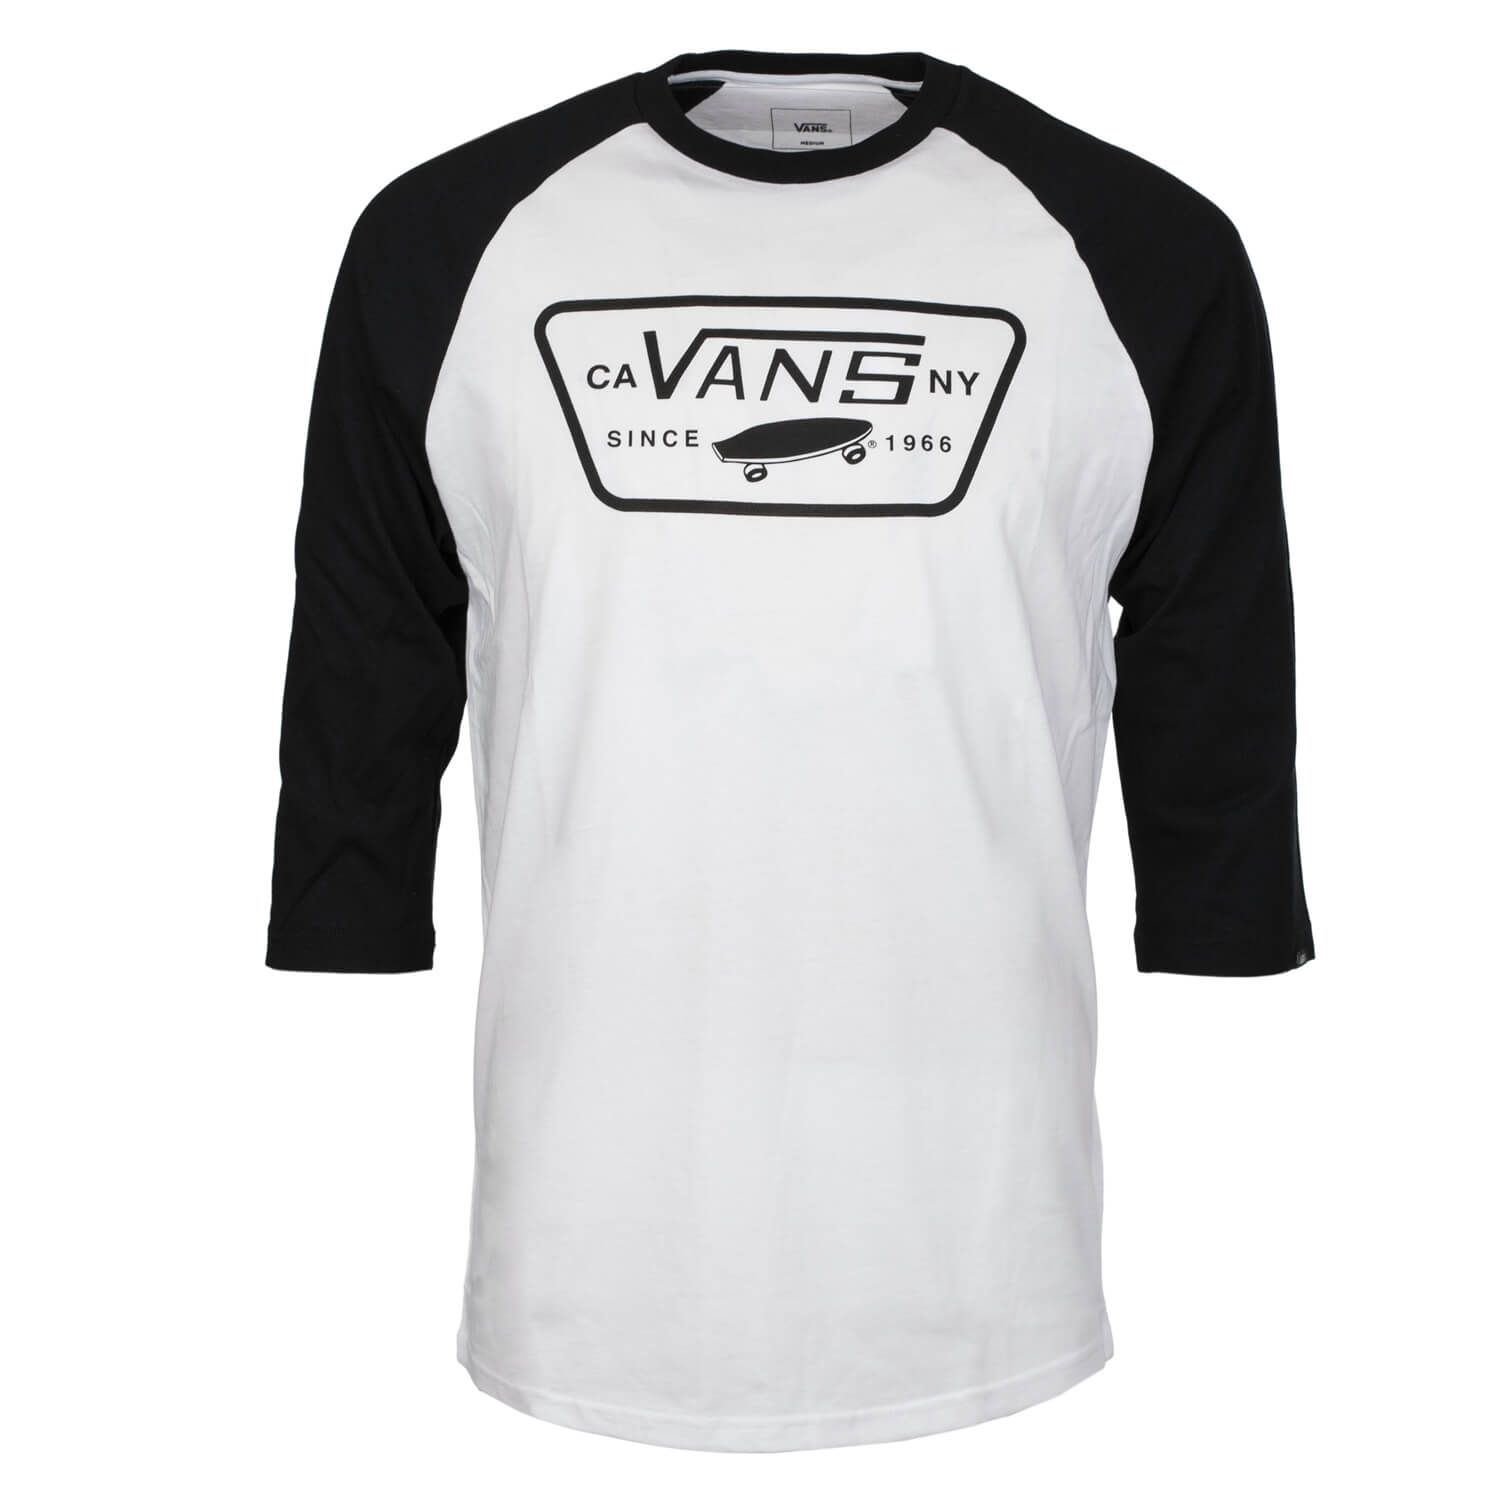 39b39229bf24 Vans Full Patch Raglan Sleeve T-Shirt weiß schwarz   DROP-IN.de